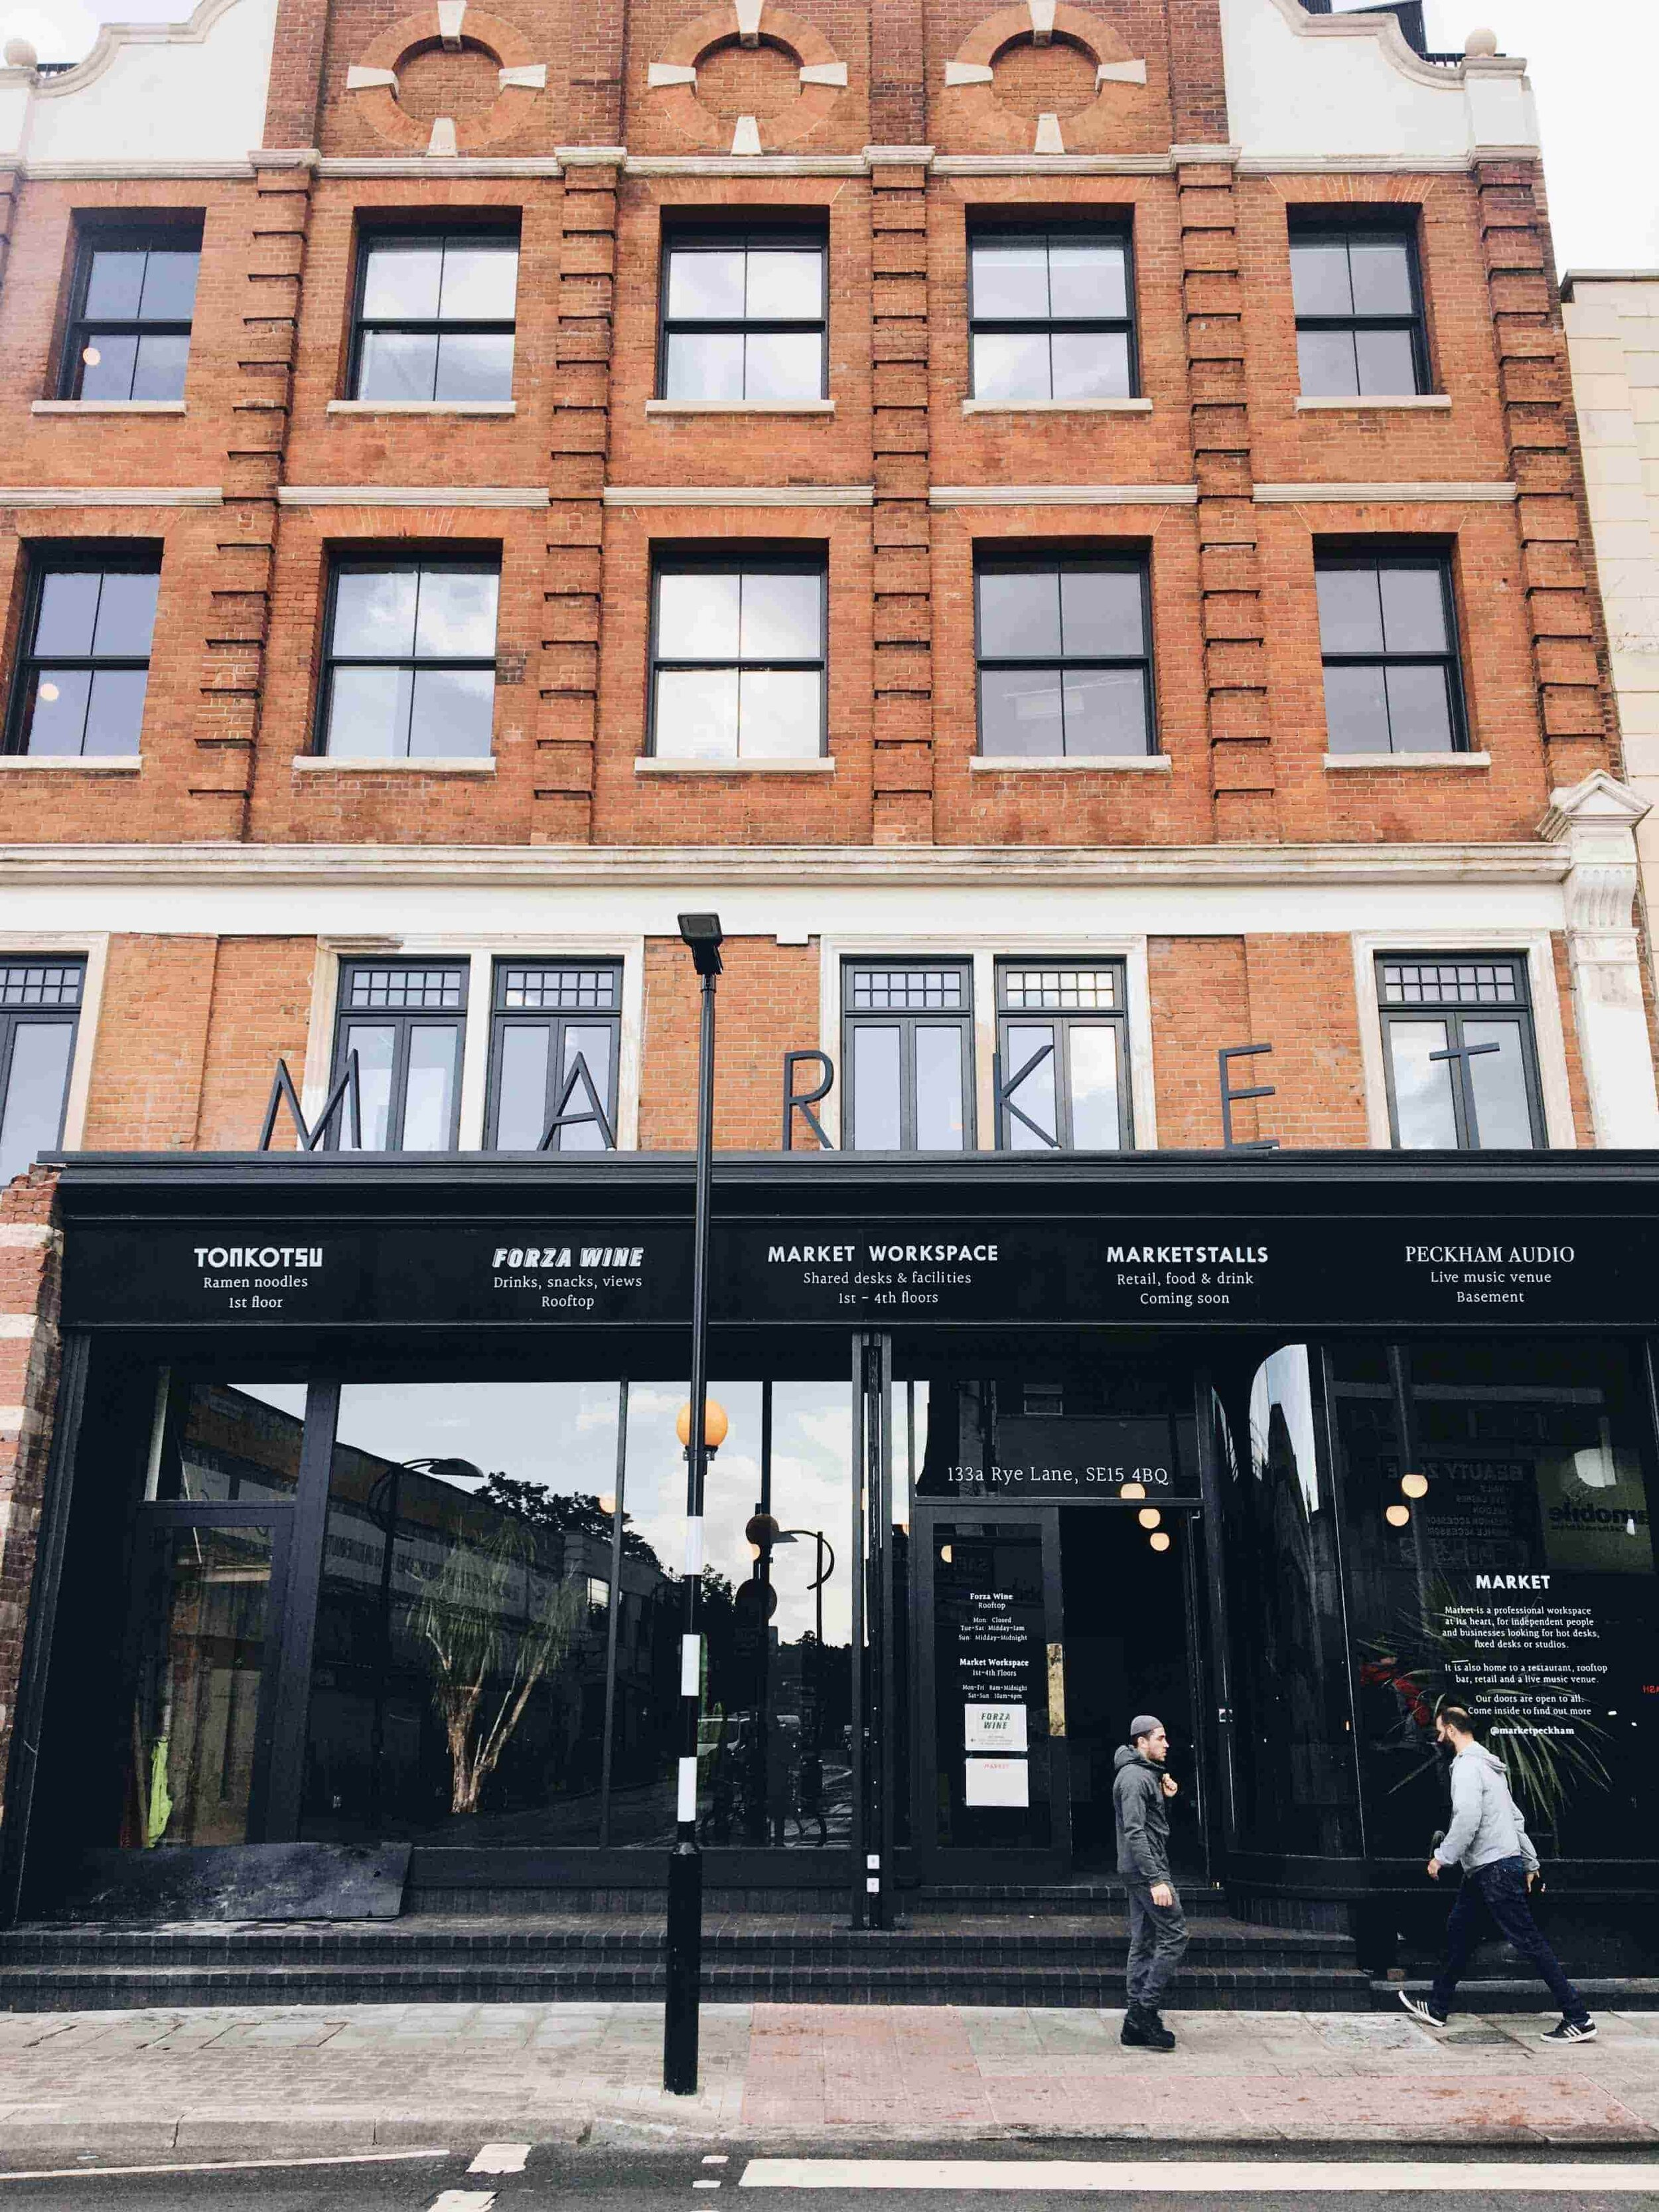 The newly refurbished Edwardian building, home to Market. Image: SouthEast15